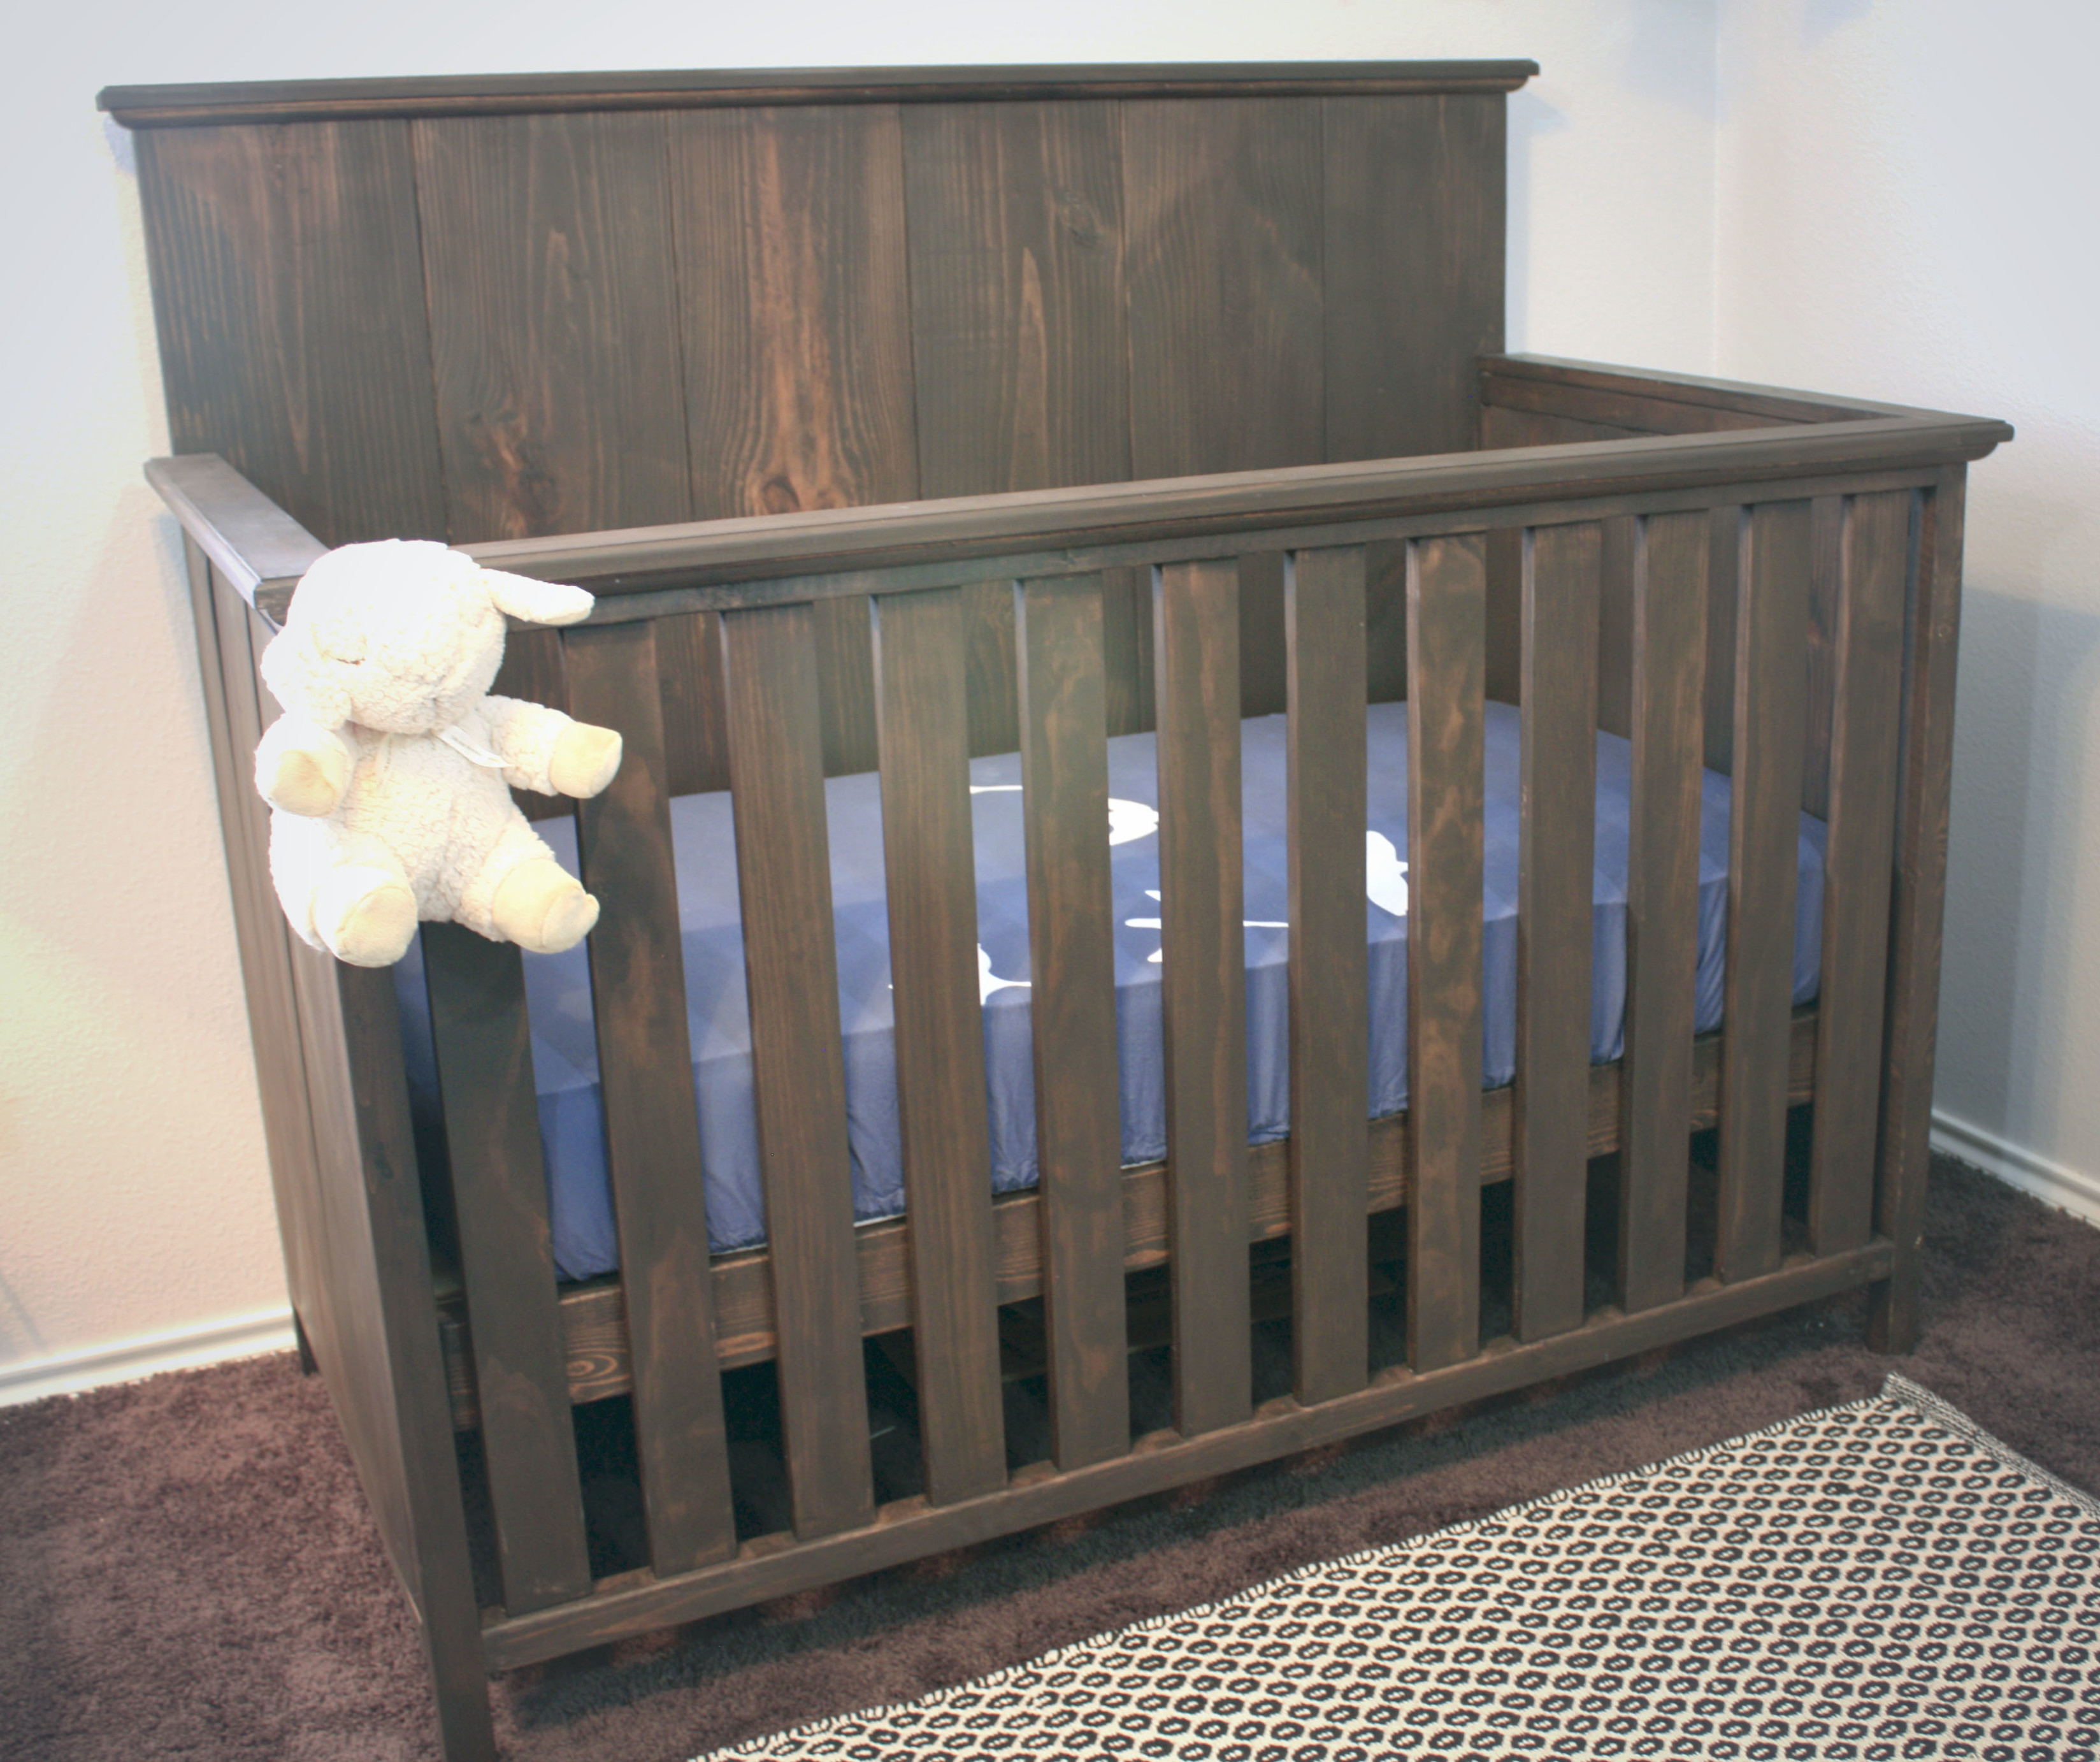 How to build a crib for 200 on house and home for Diy baby furniture